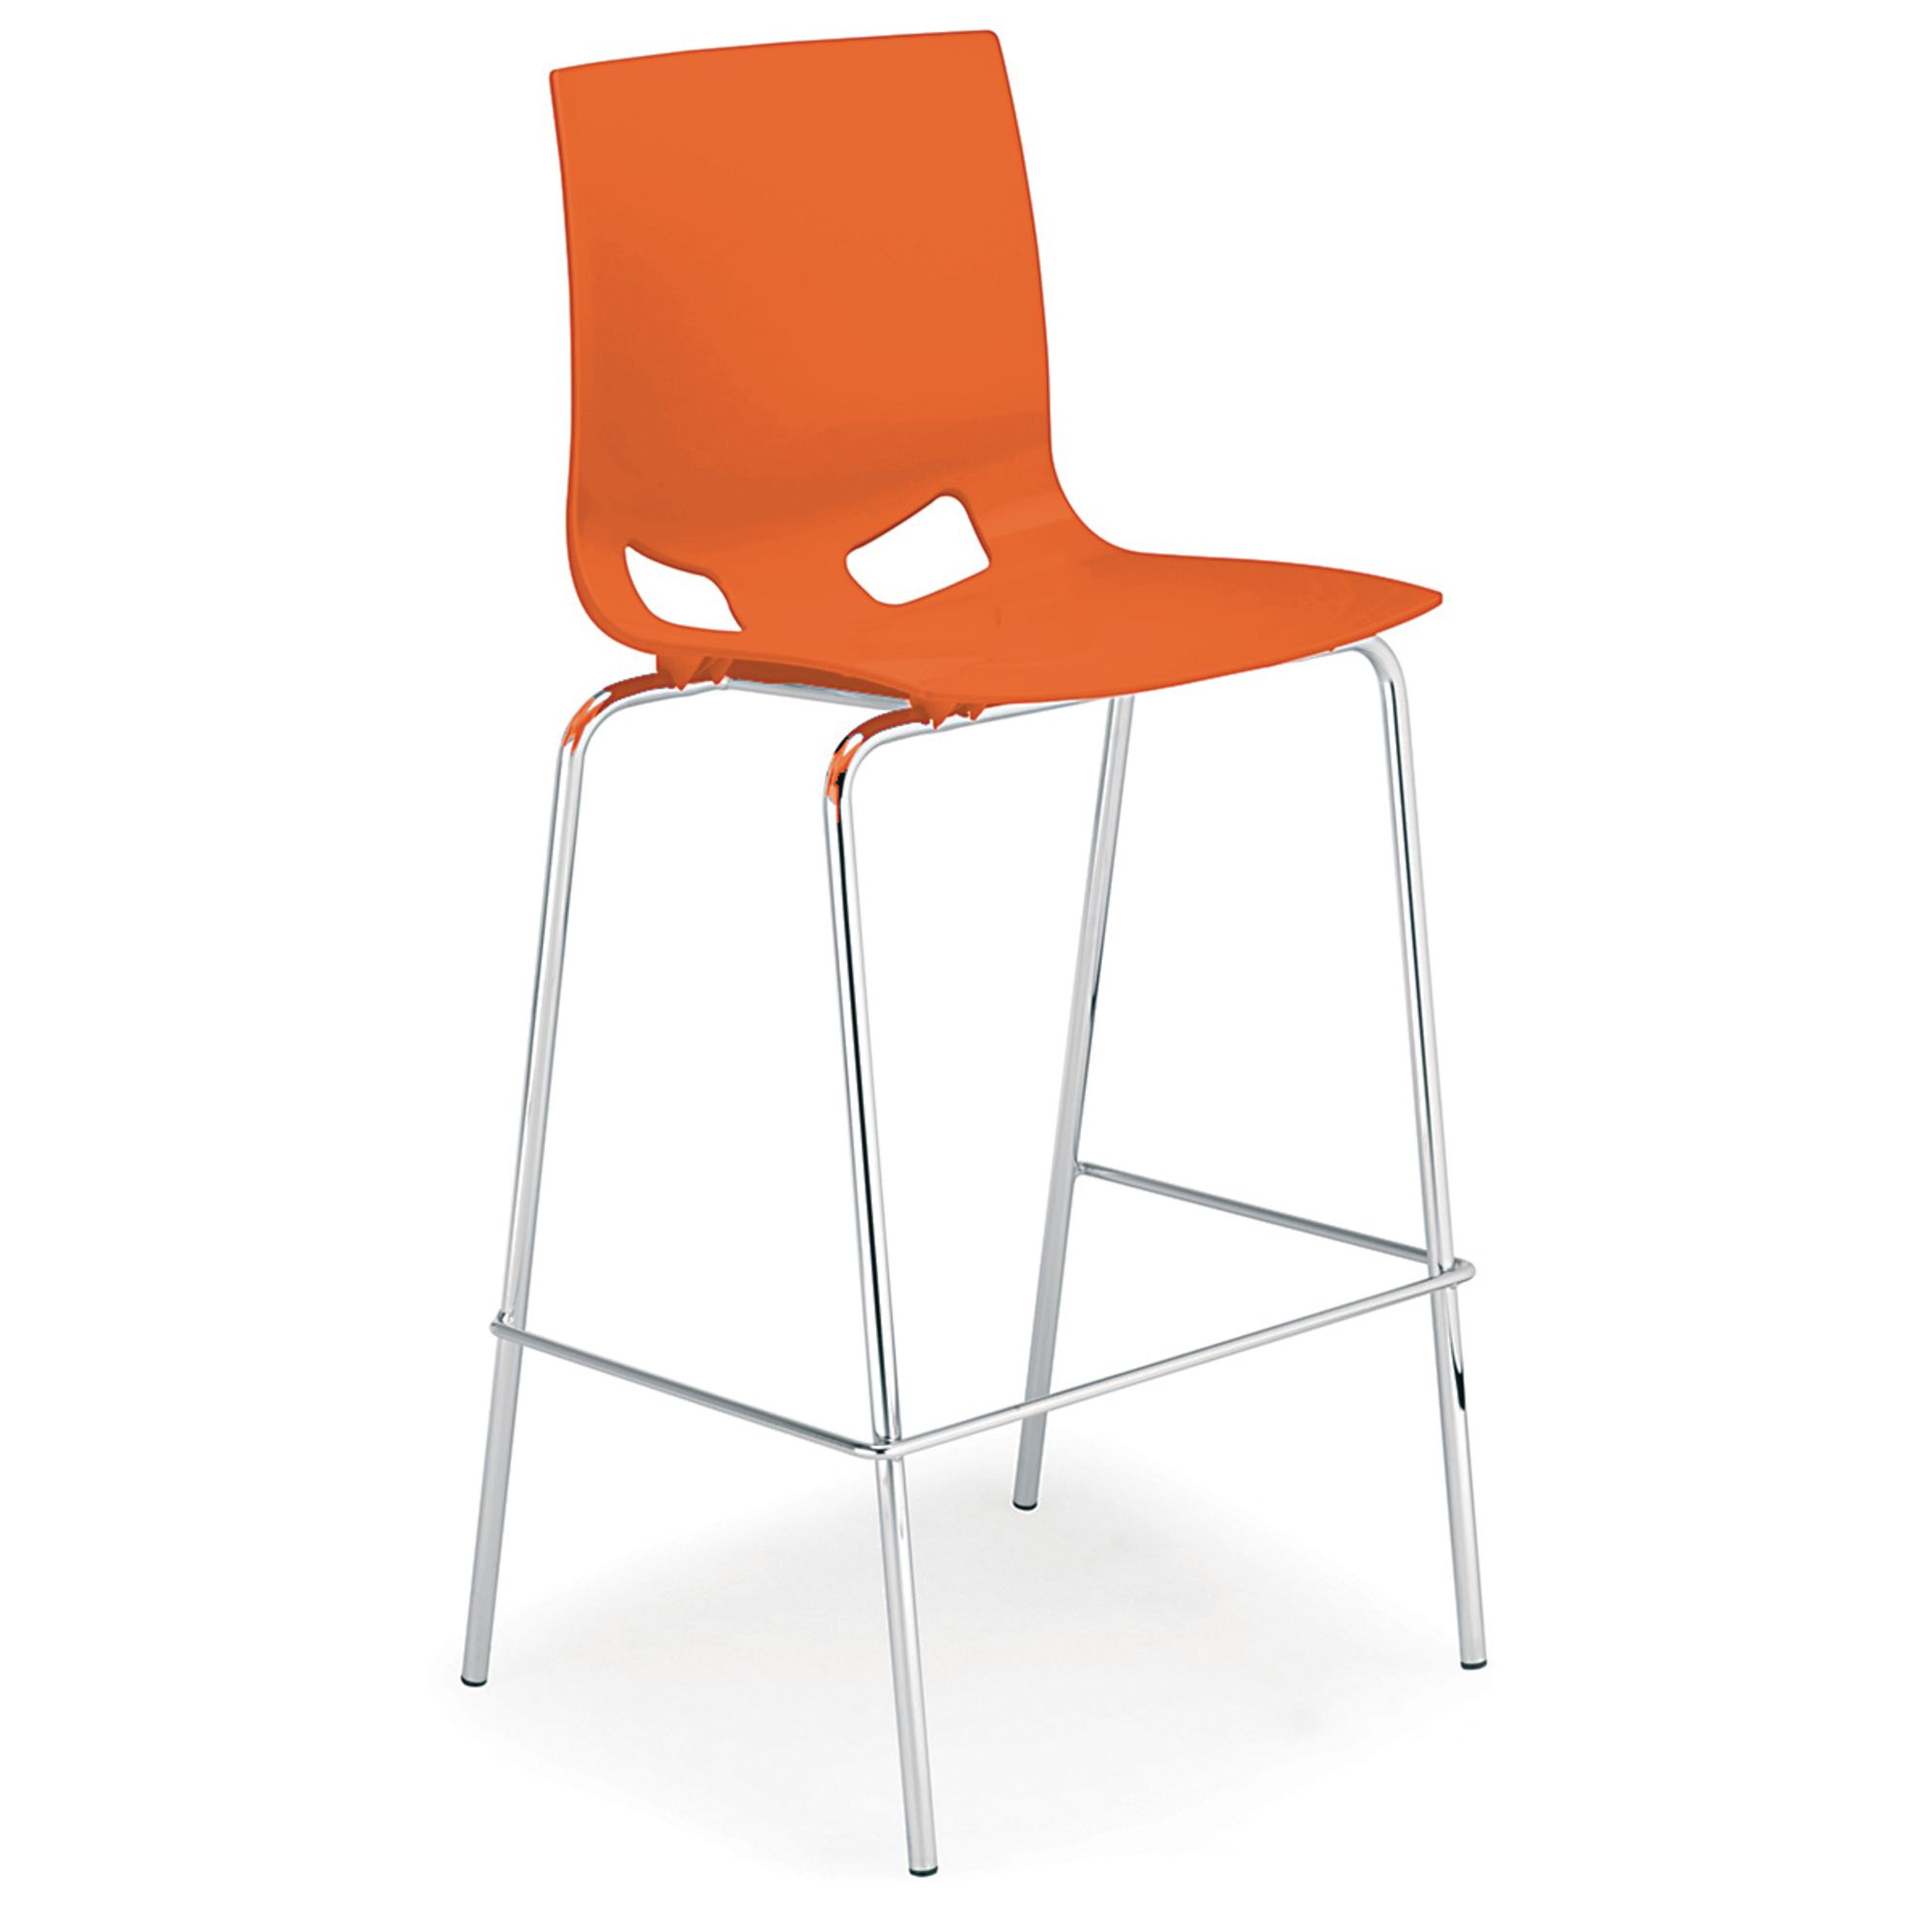 pp chair company director stool outdoor fondo gloss high orange gls educational supplies